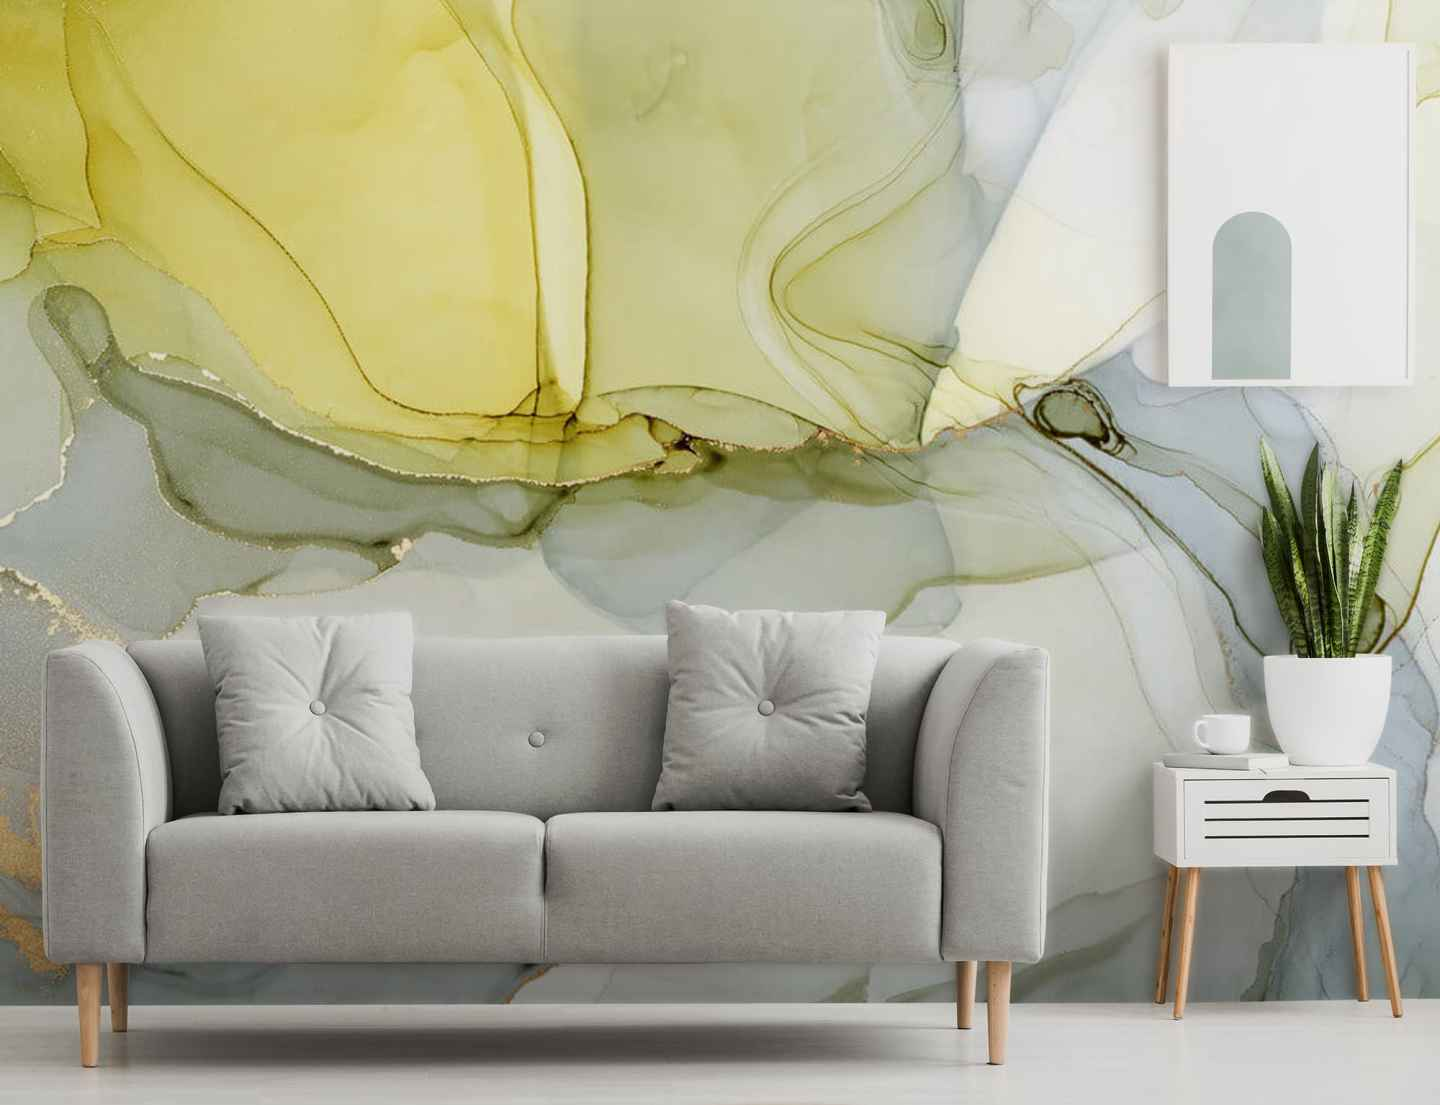 abstract mural style wallpaper in grey and mustard